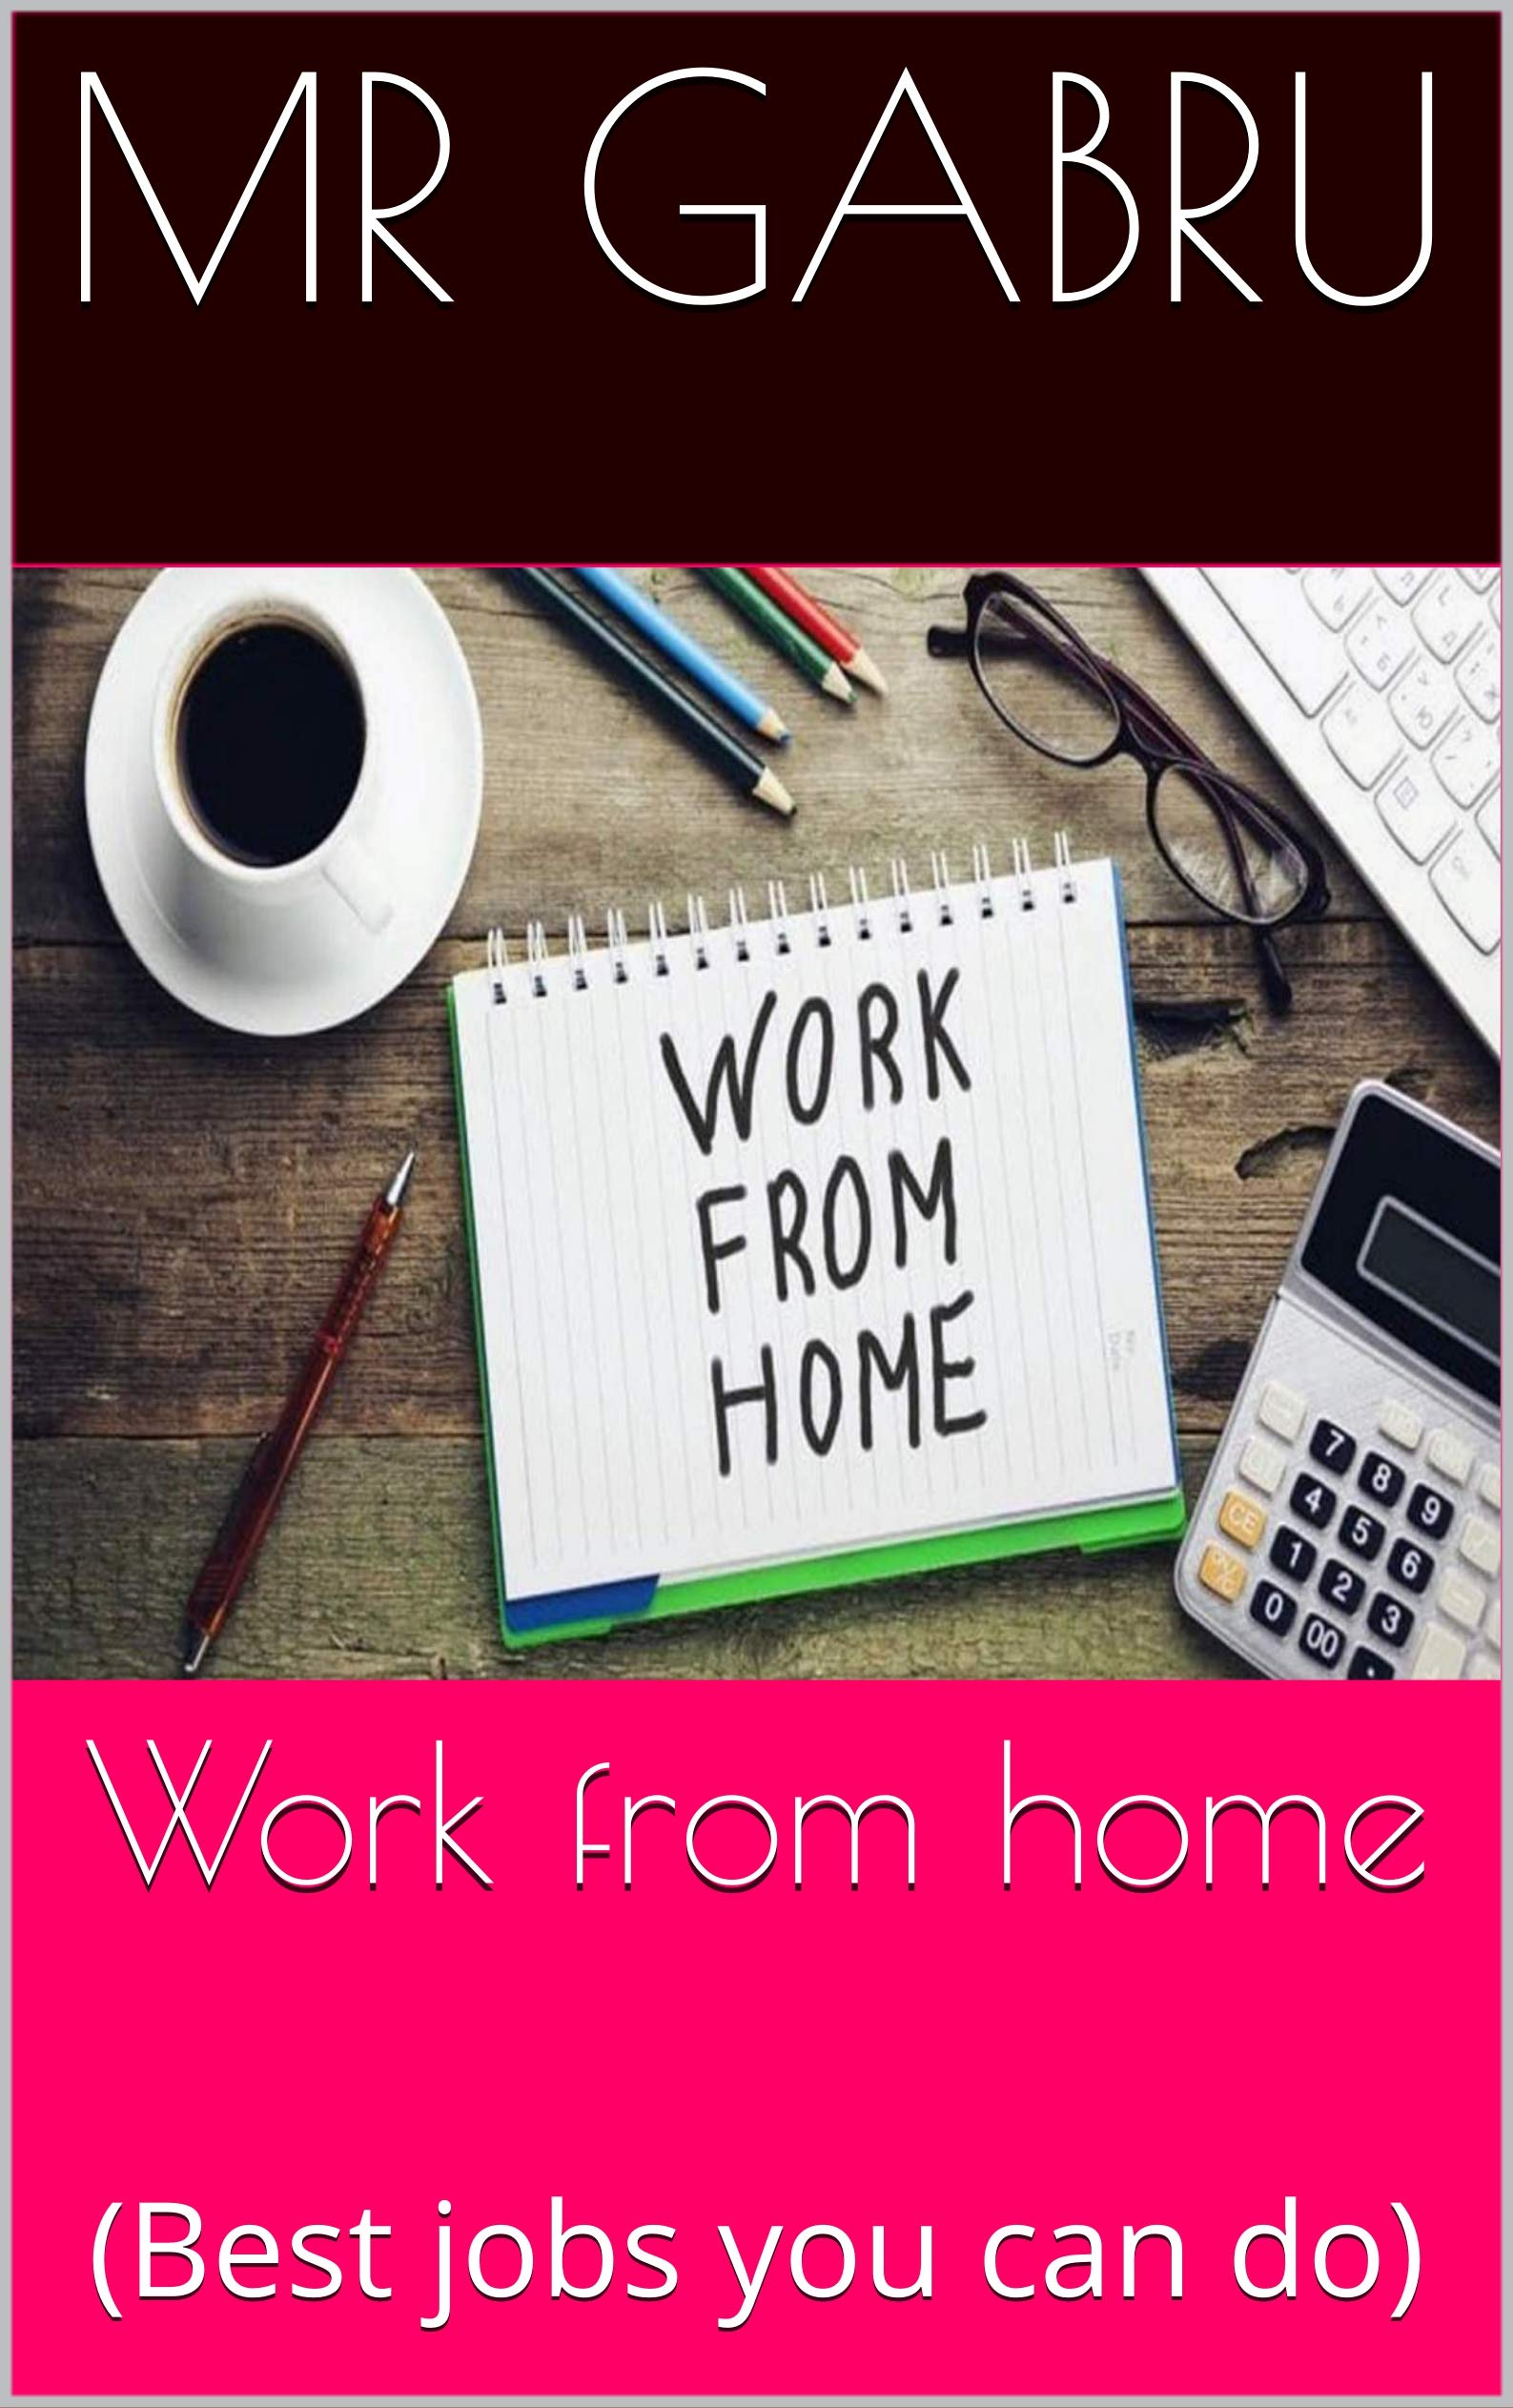 Work from home: (Best jobs you can do)